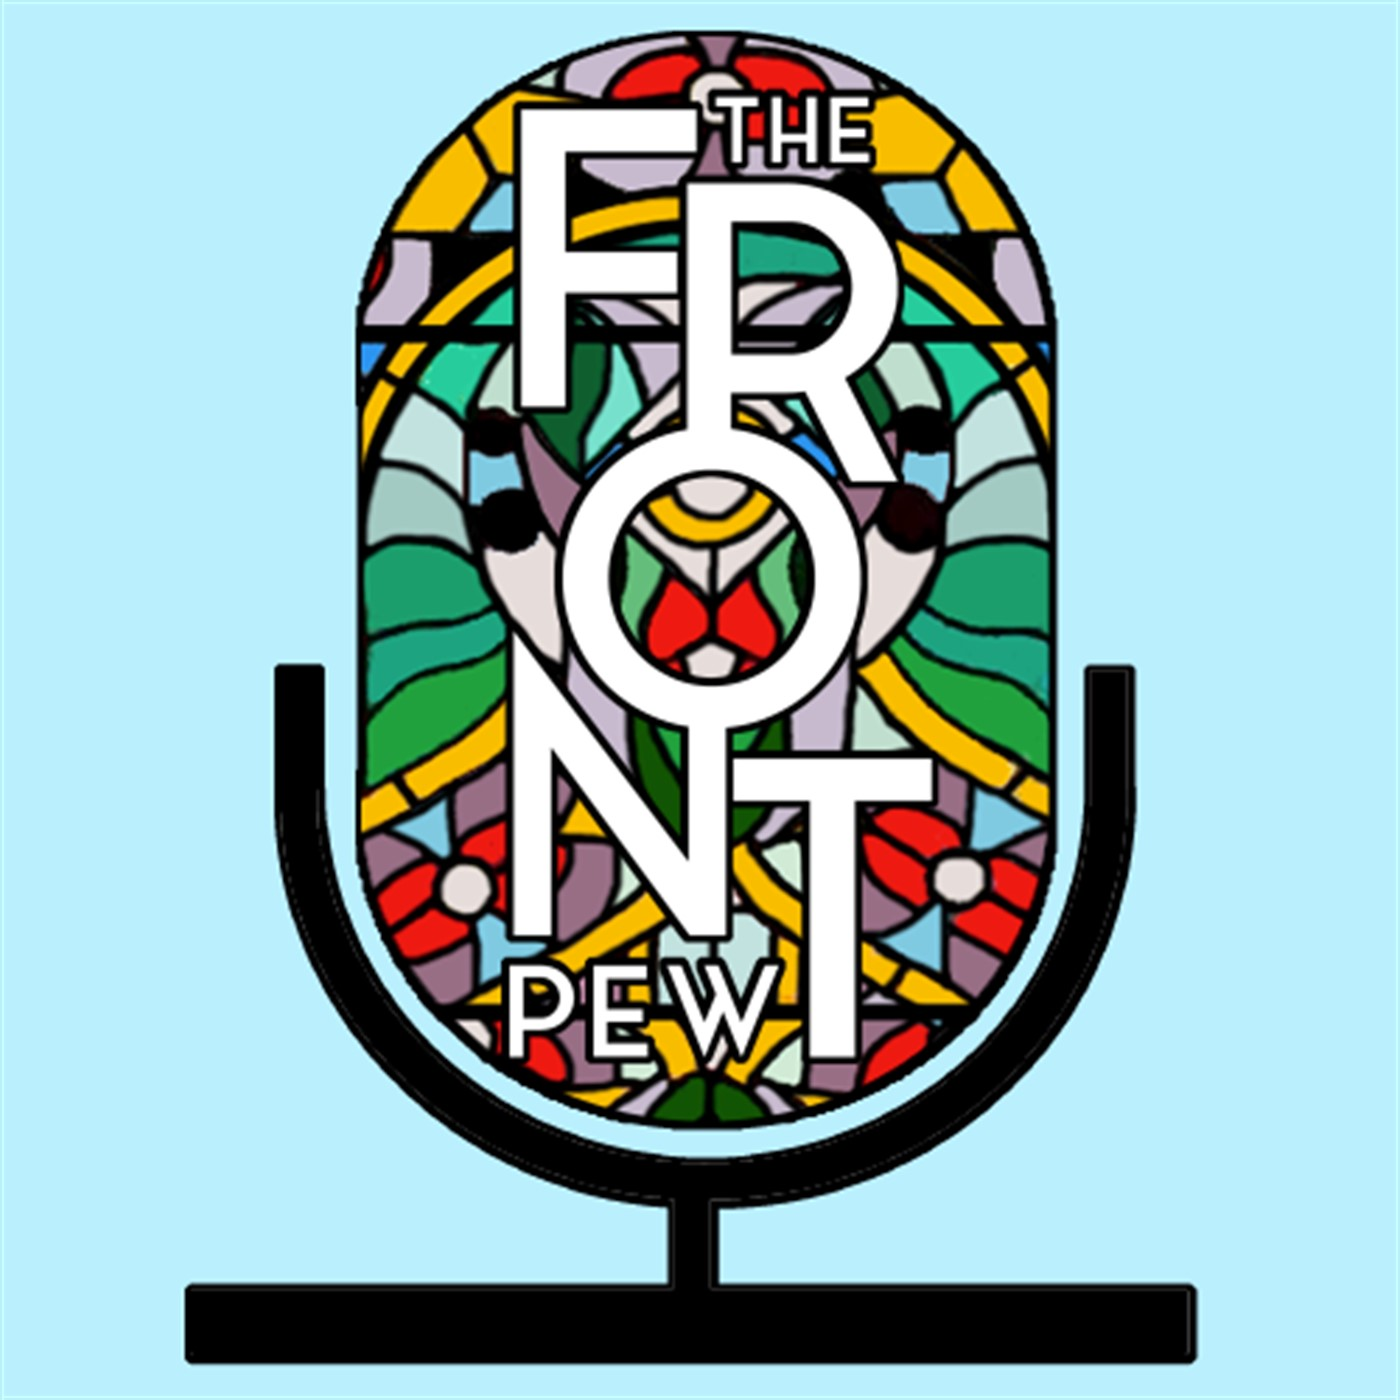 The Front Pew show art